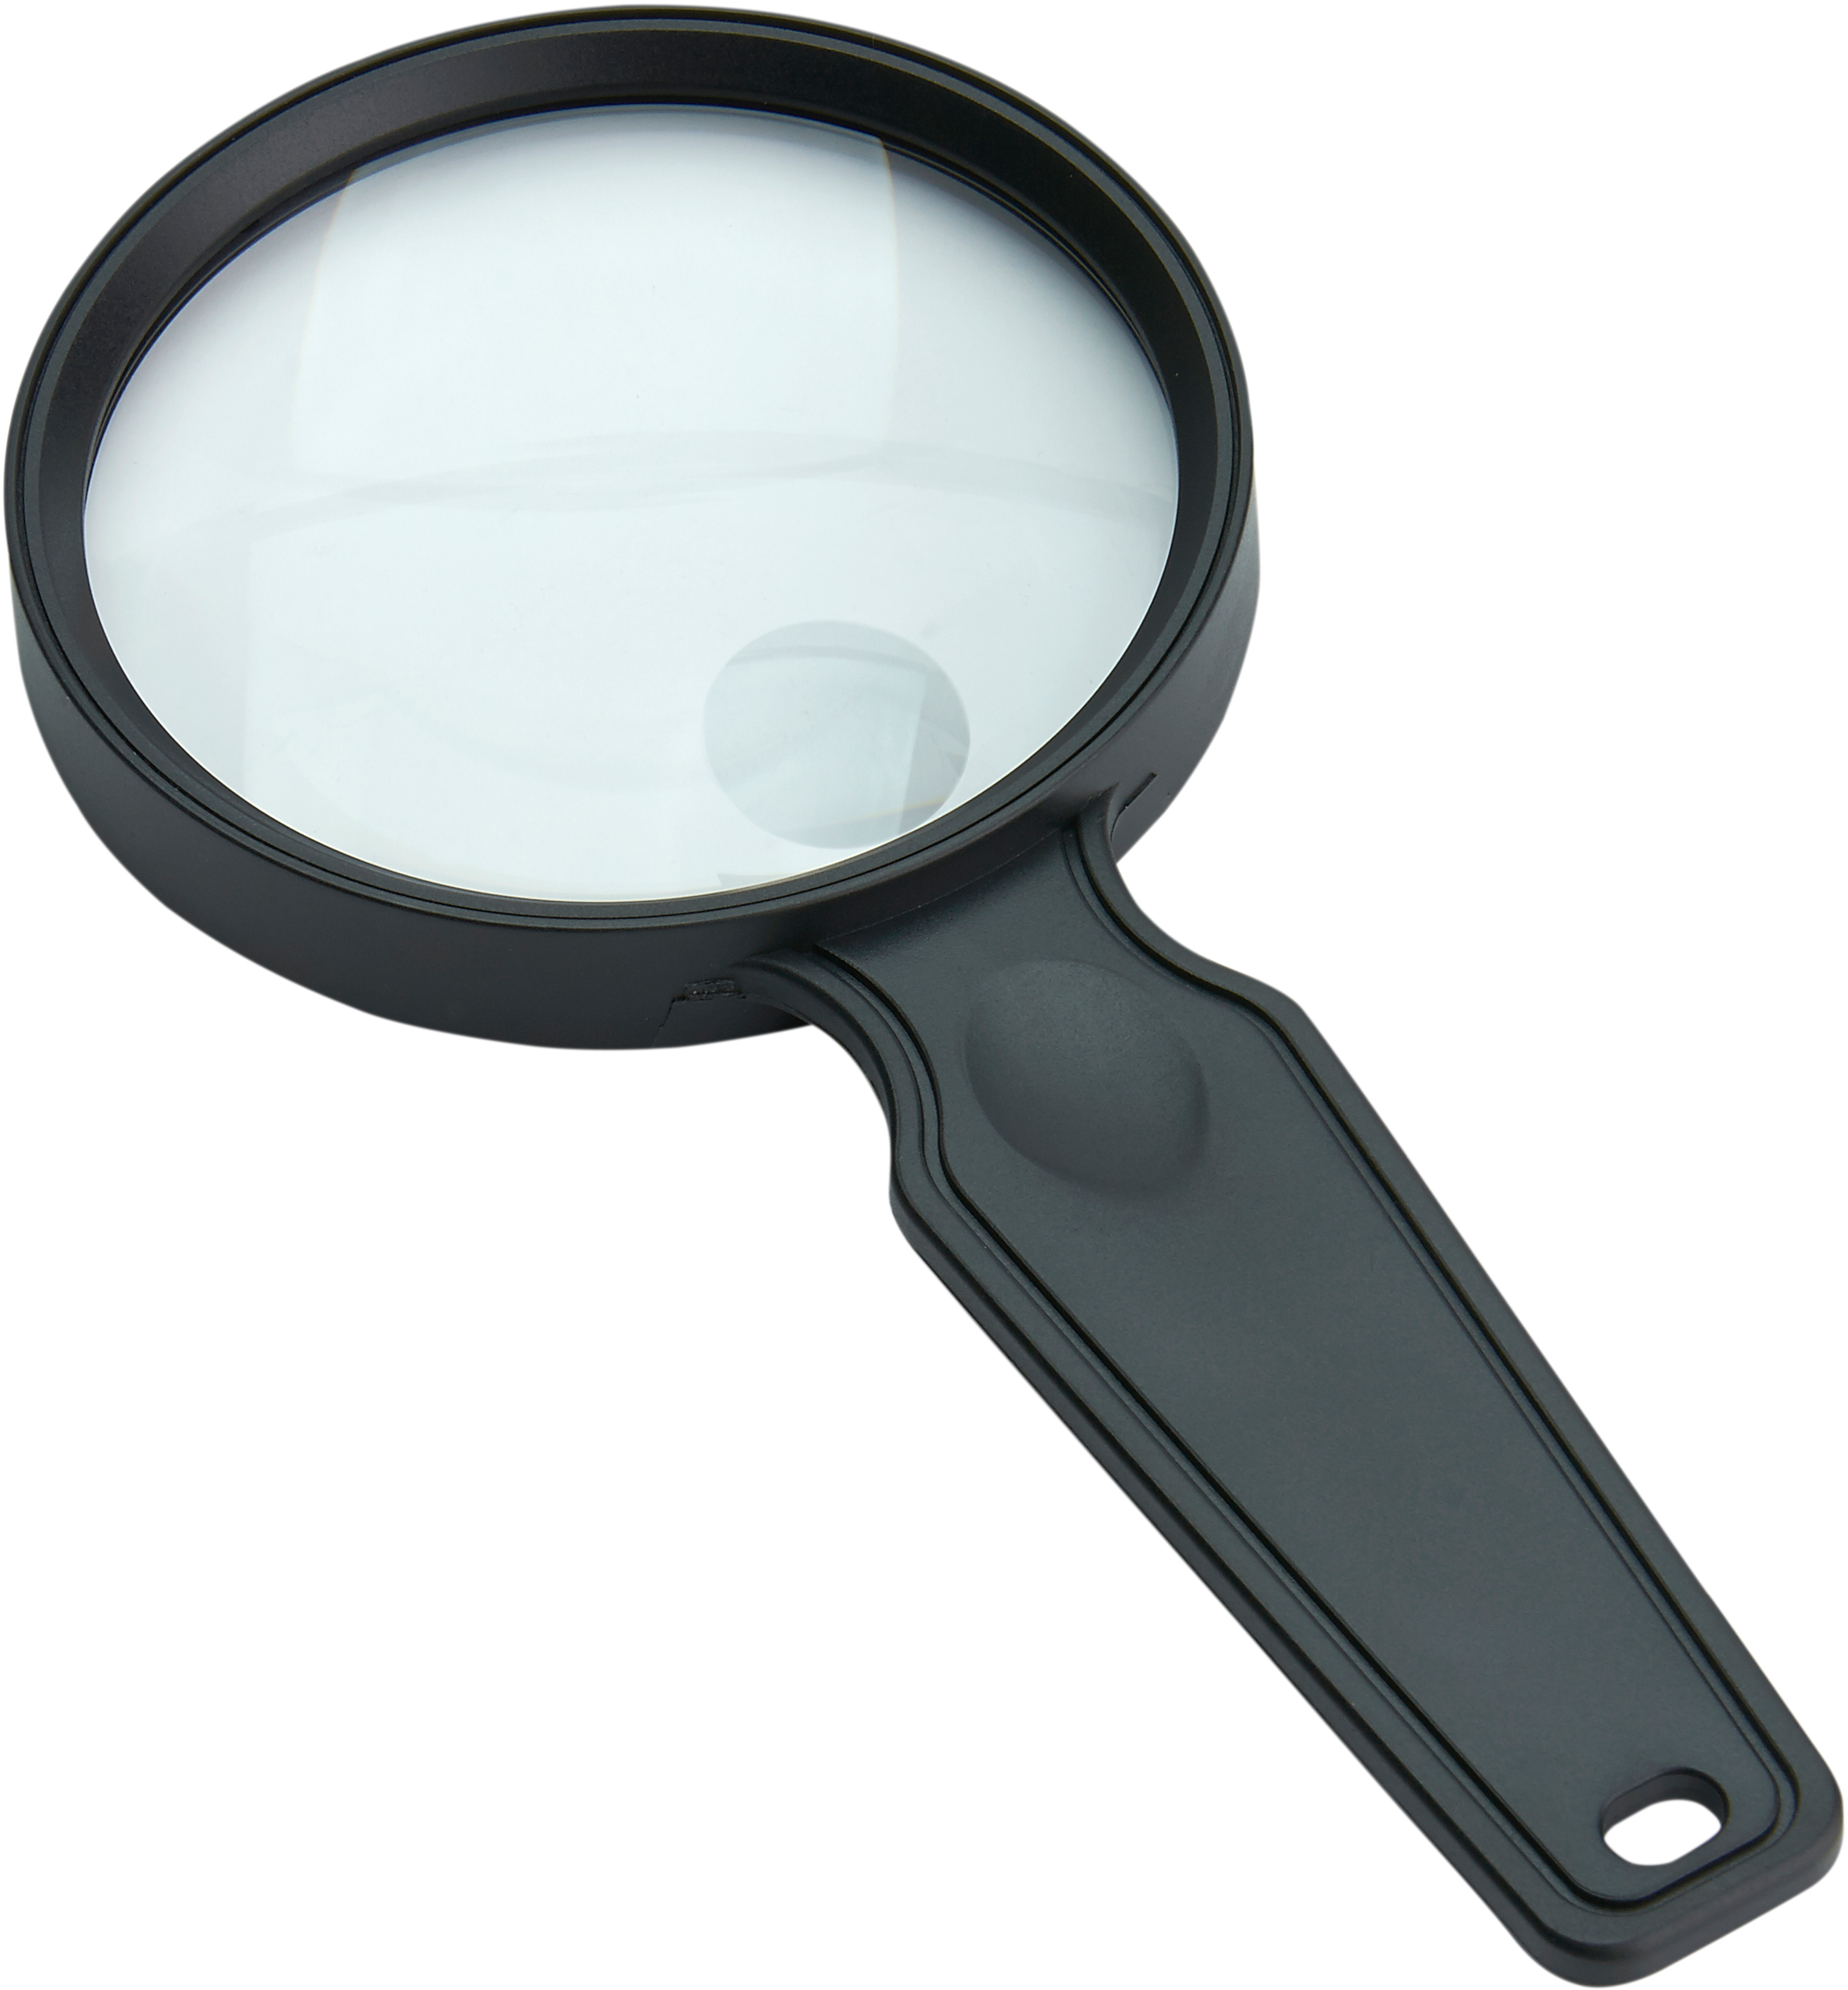 Carson MagniView 2x Power Compact and Lightweight Magnifying Glass Hand-Held Magnifier with 4.5x Spot Lens (DS-36)